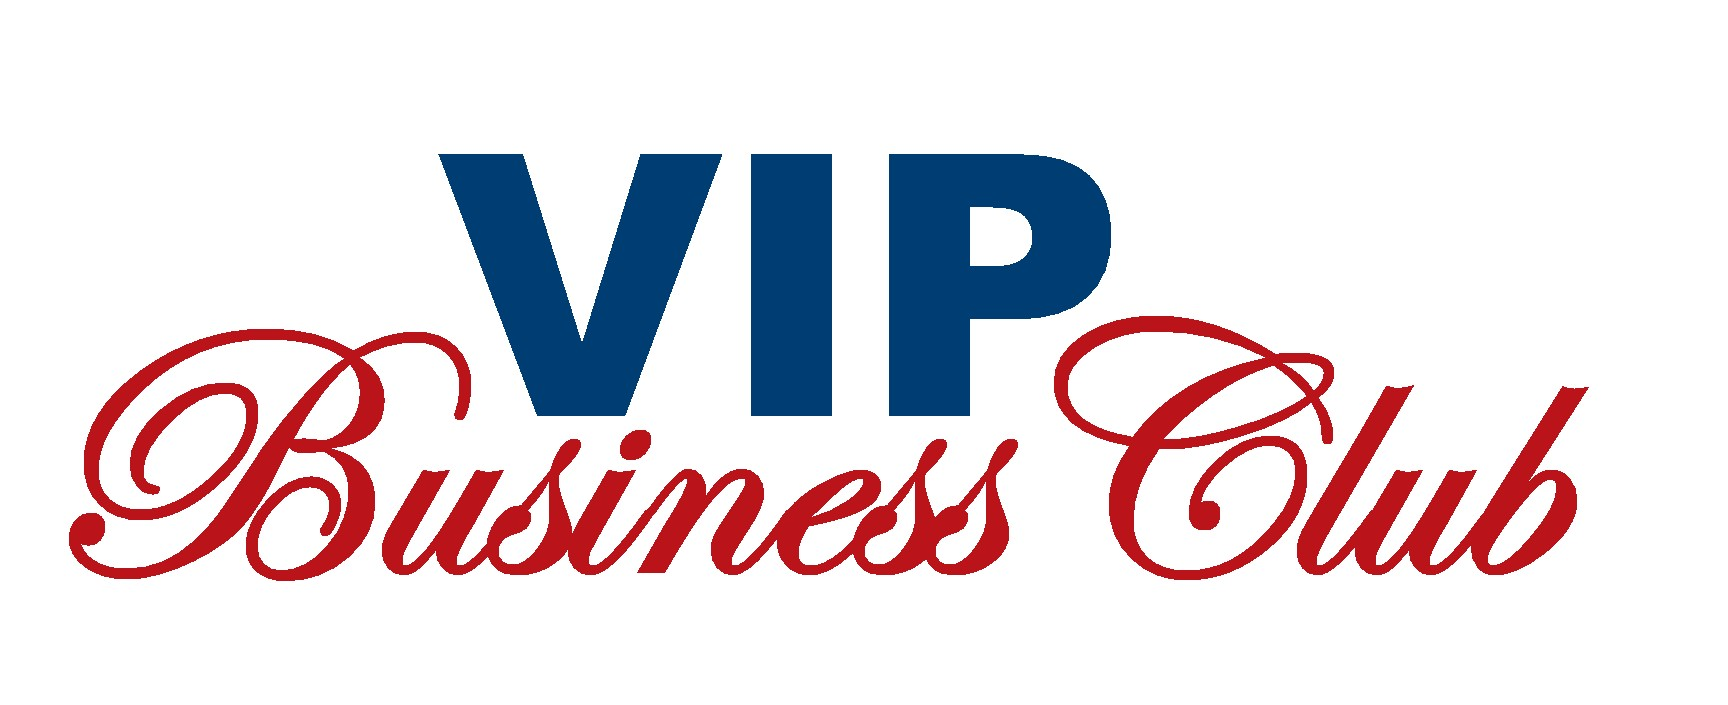 VIPBC - VIP BUSINESS CLUB